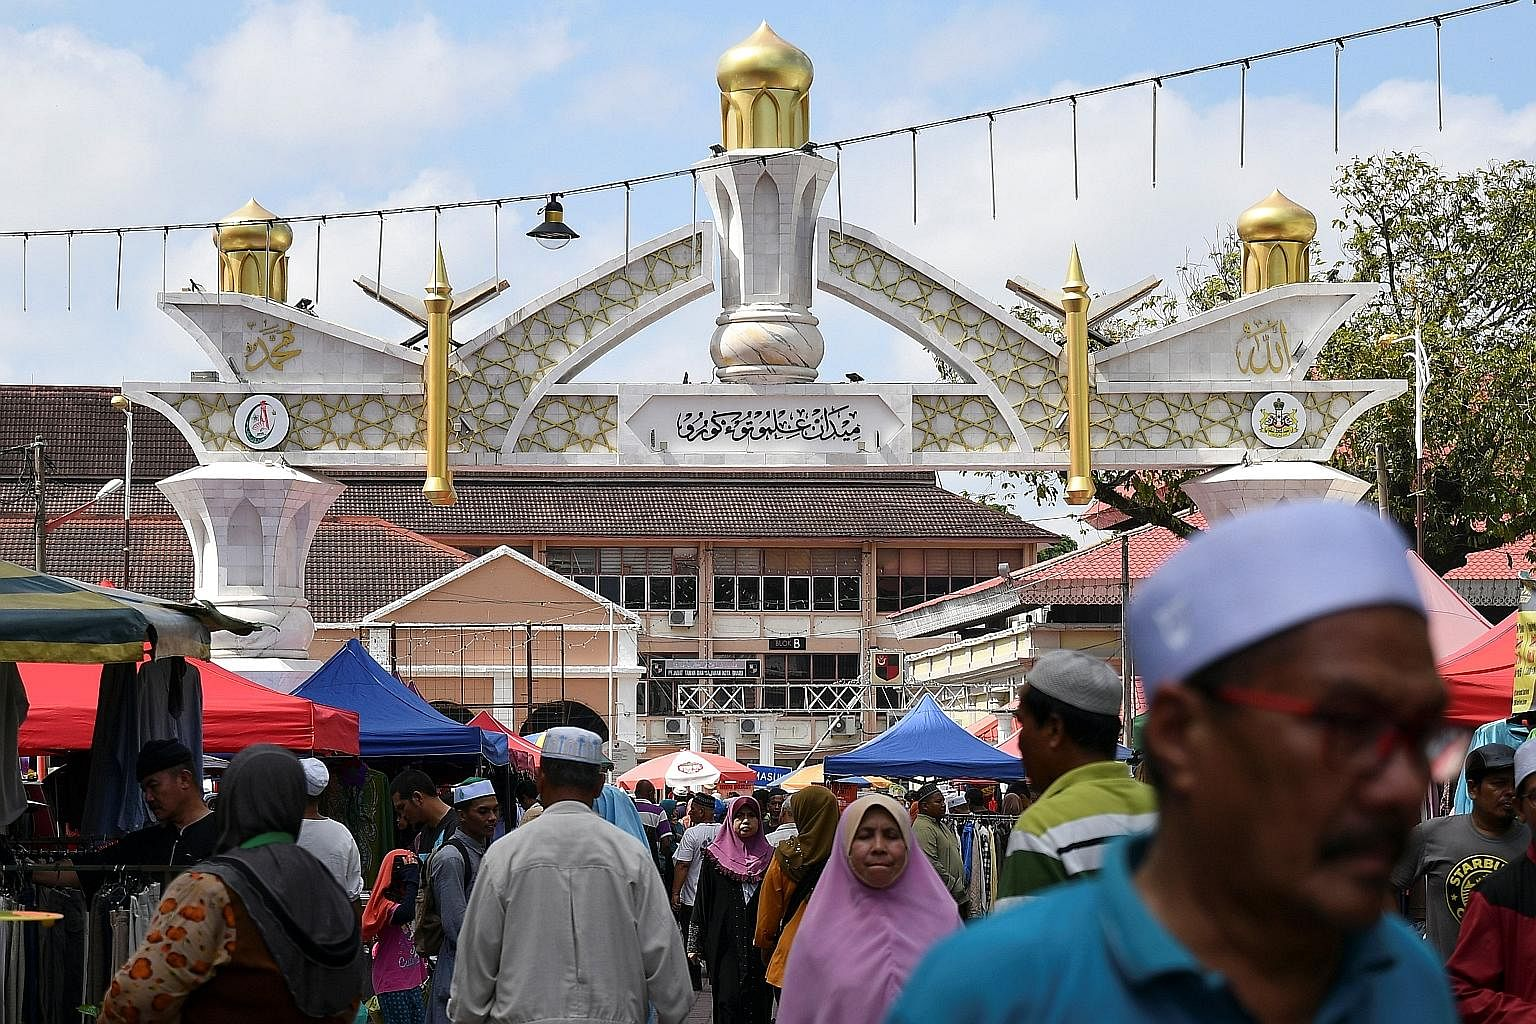 Malay politics, according to the writer, is at a watershed. Both BN and PH are Malay-led. Whichever side wins, it will still be a Malay-led government in Malaysia. But the flux in Malay politics is, by extension, throwing the whole political landscap